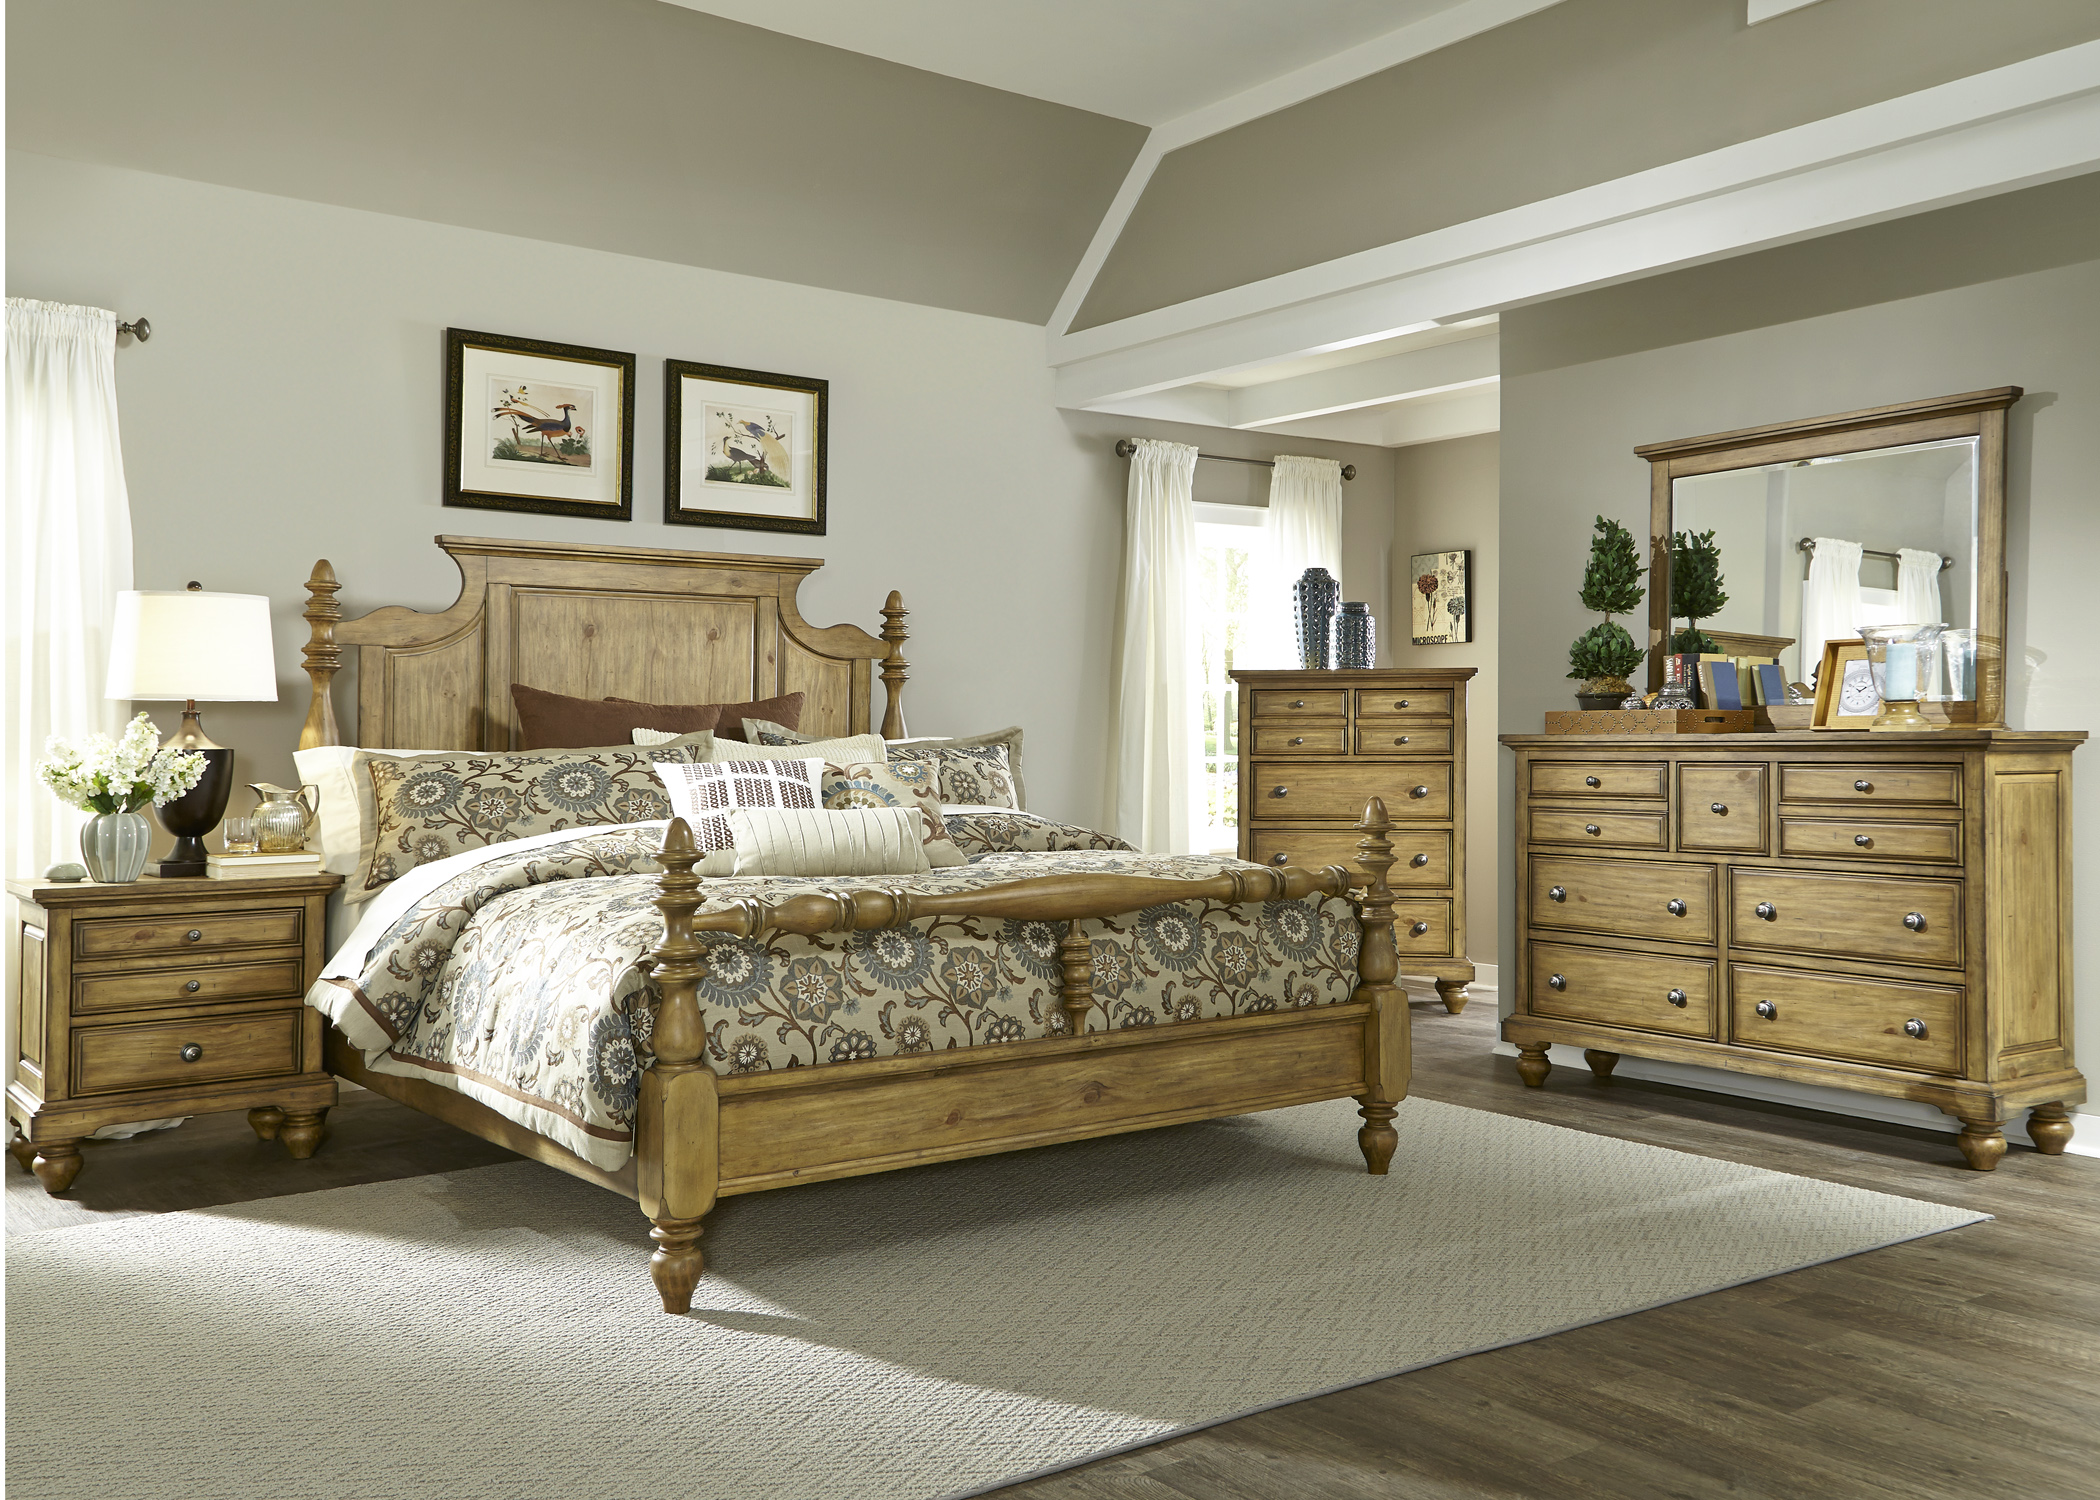 Liberty Furniture High Country King Bedroom Group - Item Number: 797-BR-KPSDMCN